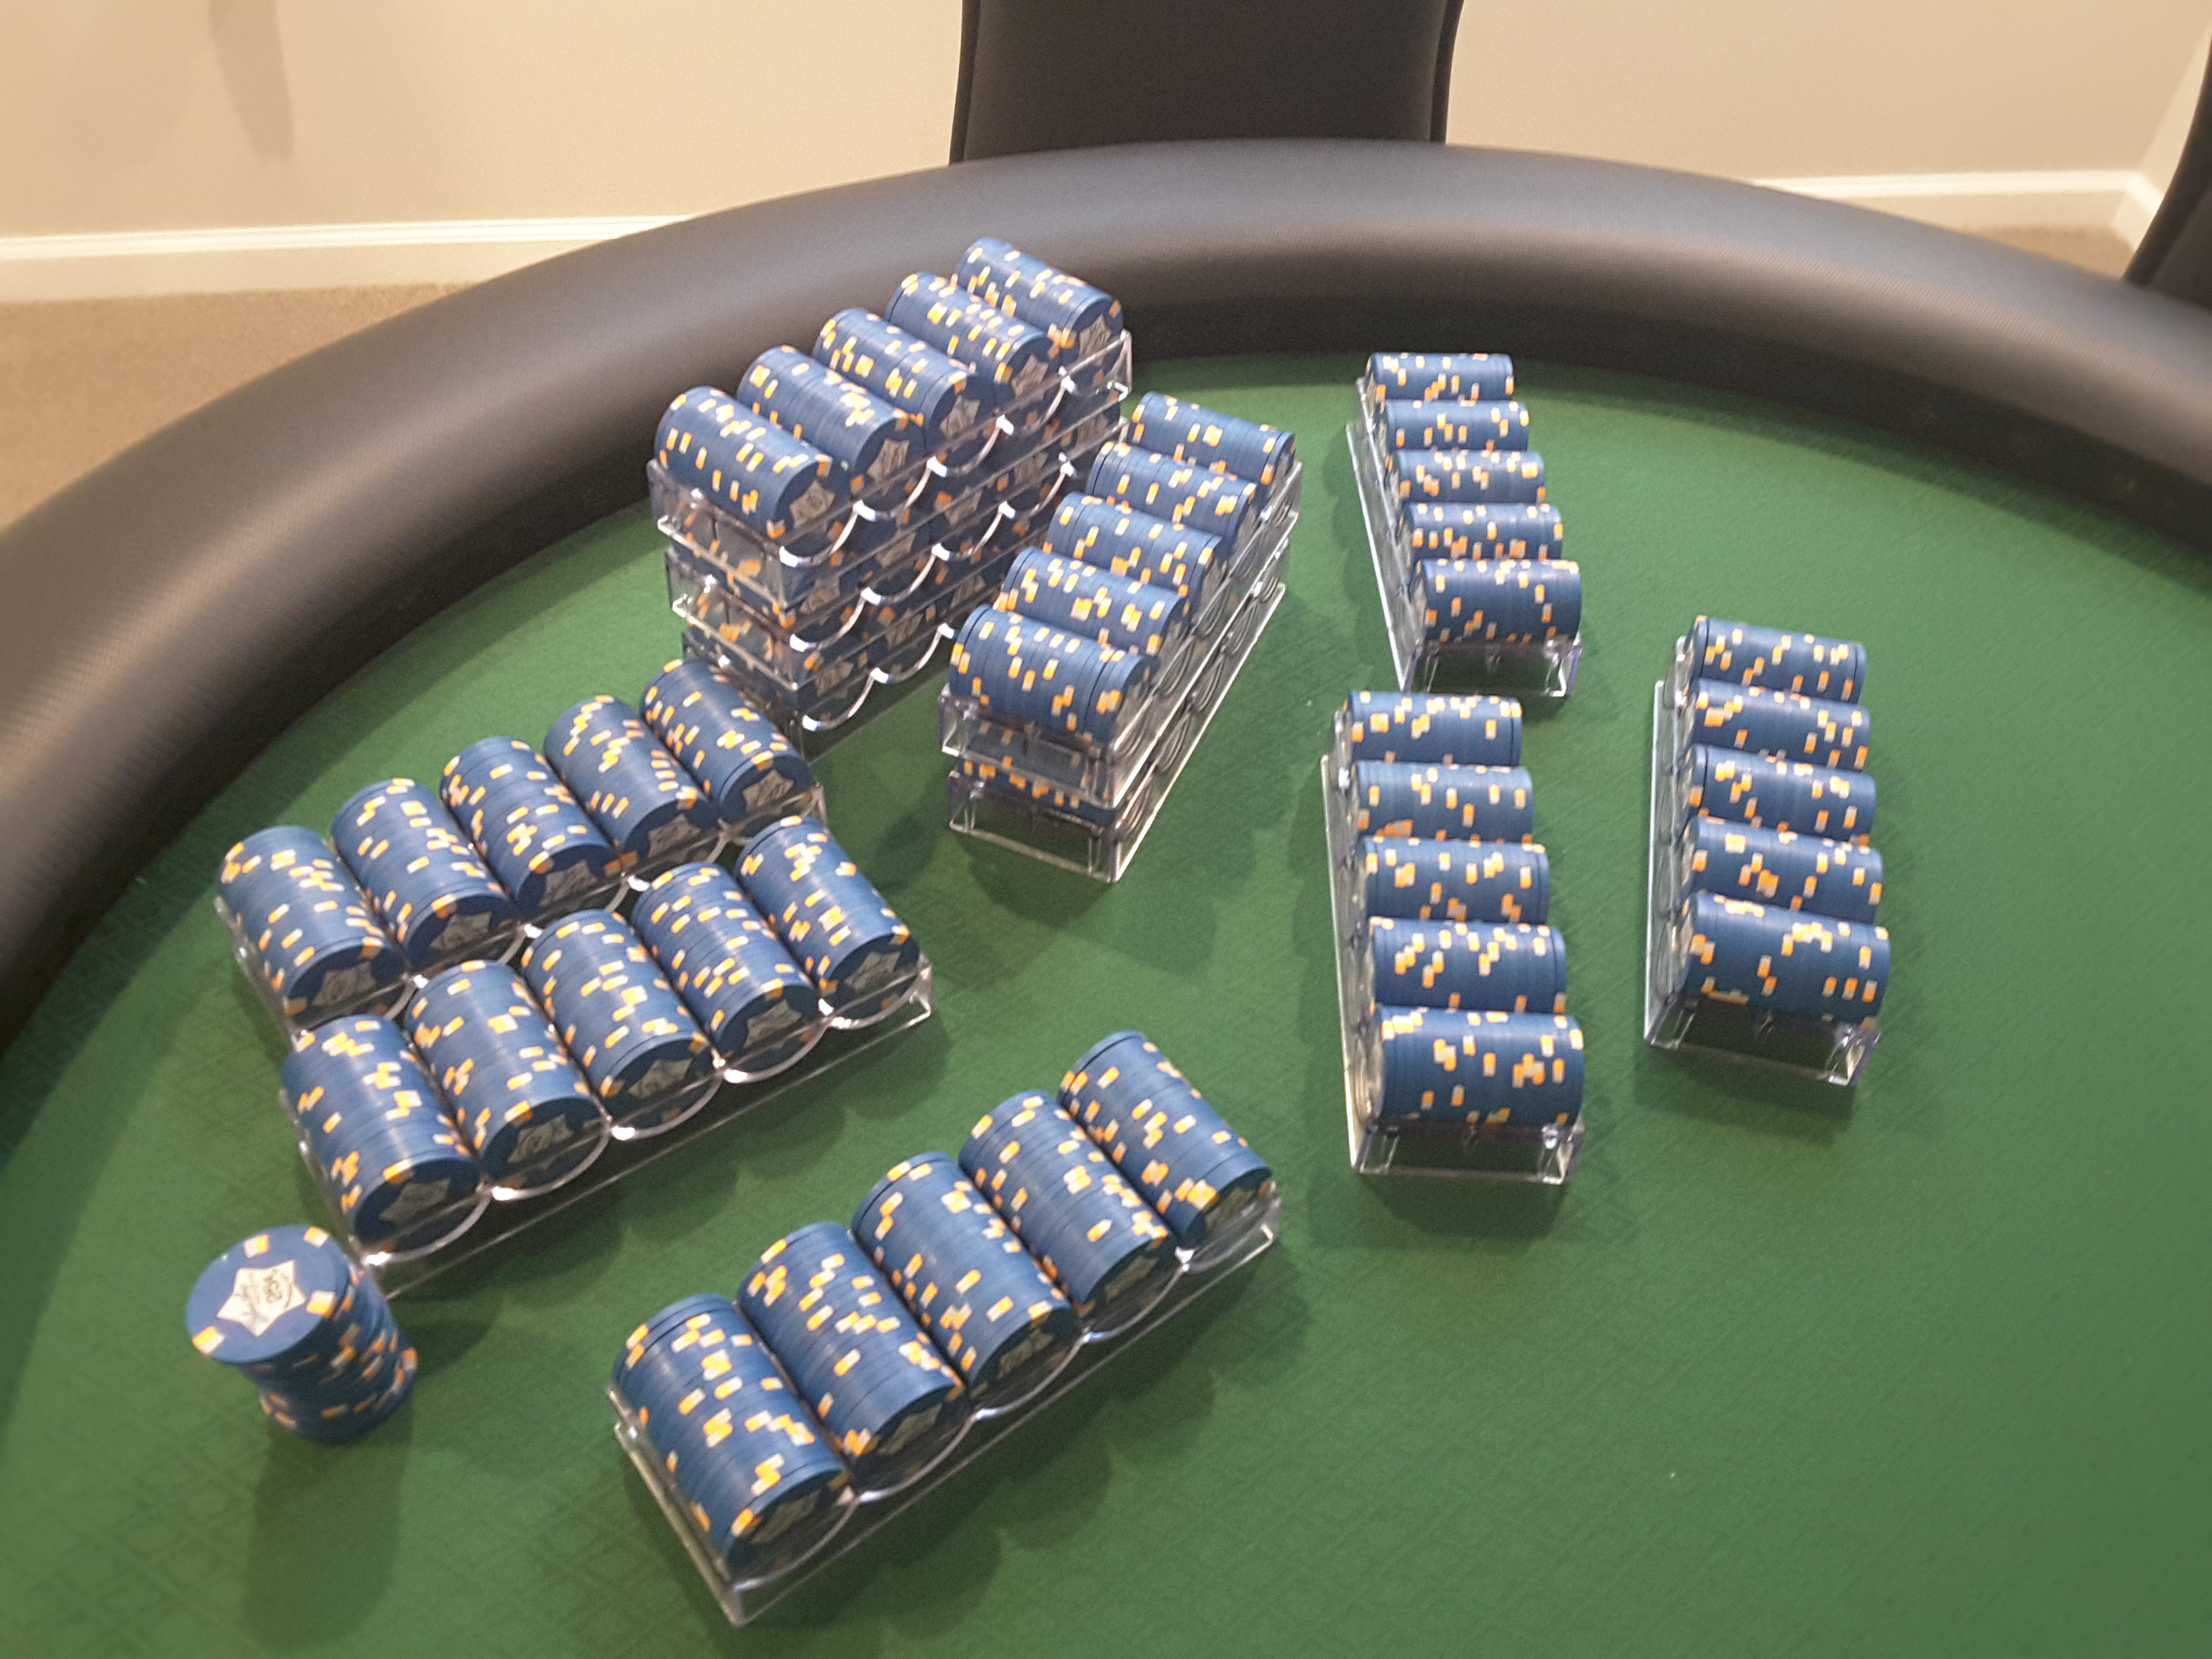 Blue chip casino chips shawn johnson proctor and gamble